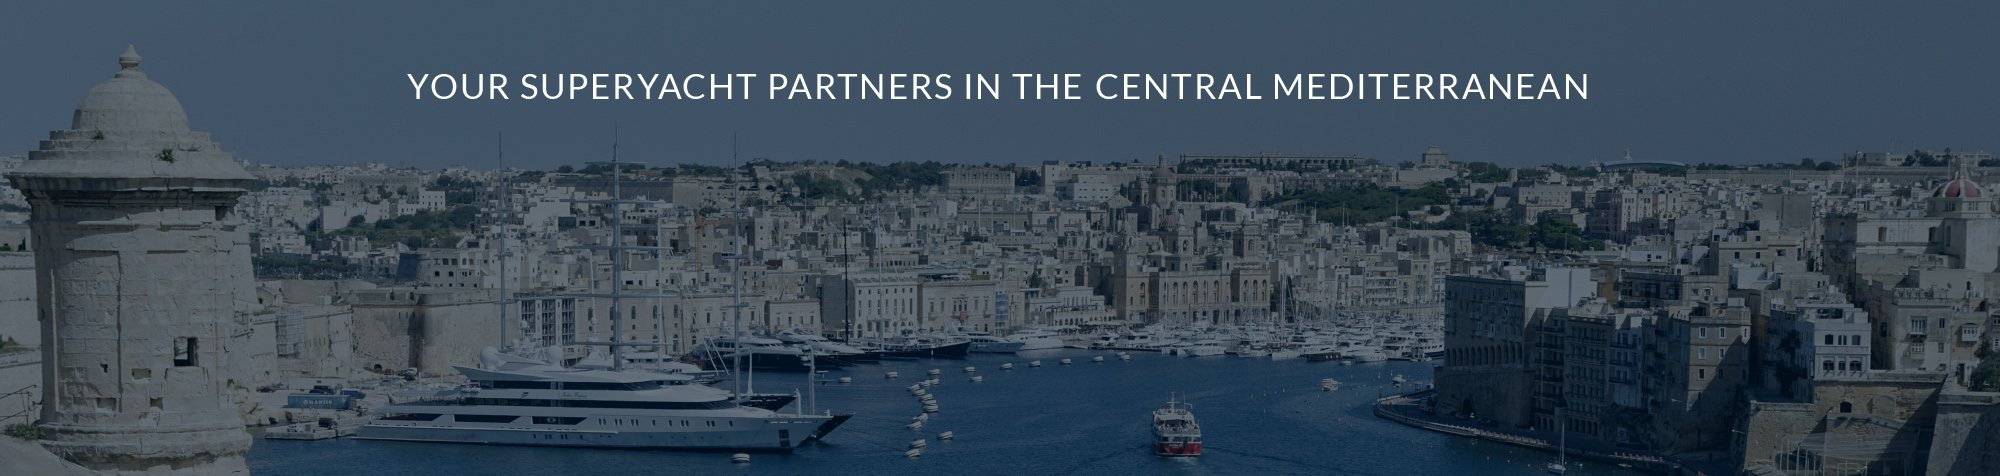 Super Yacht Industry Network Malta malta